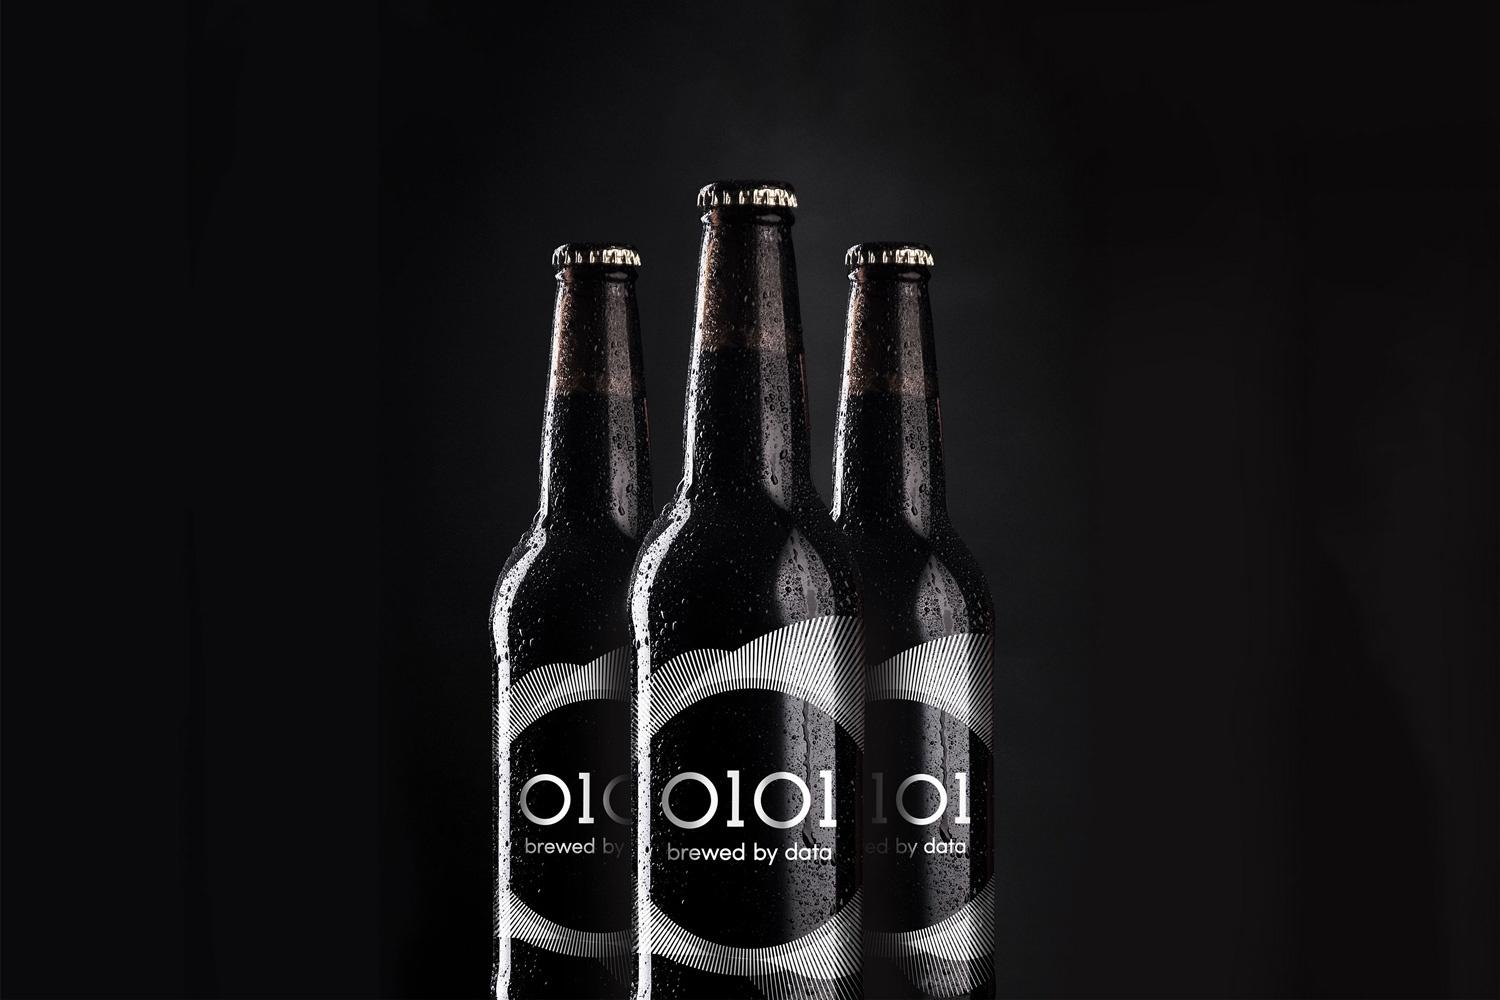 This beer was perfectly crafted using social media and data science